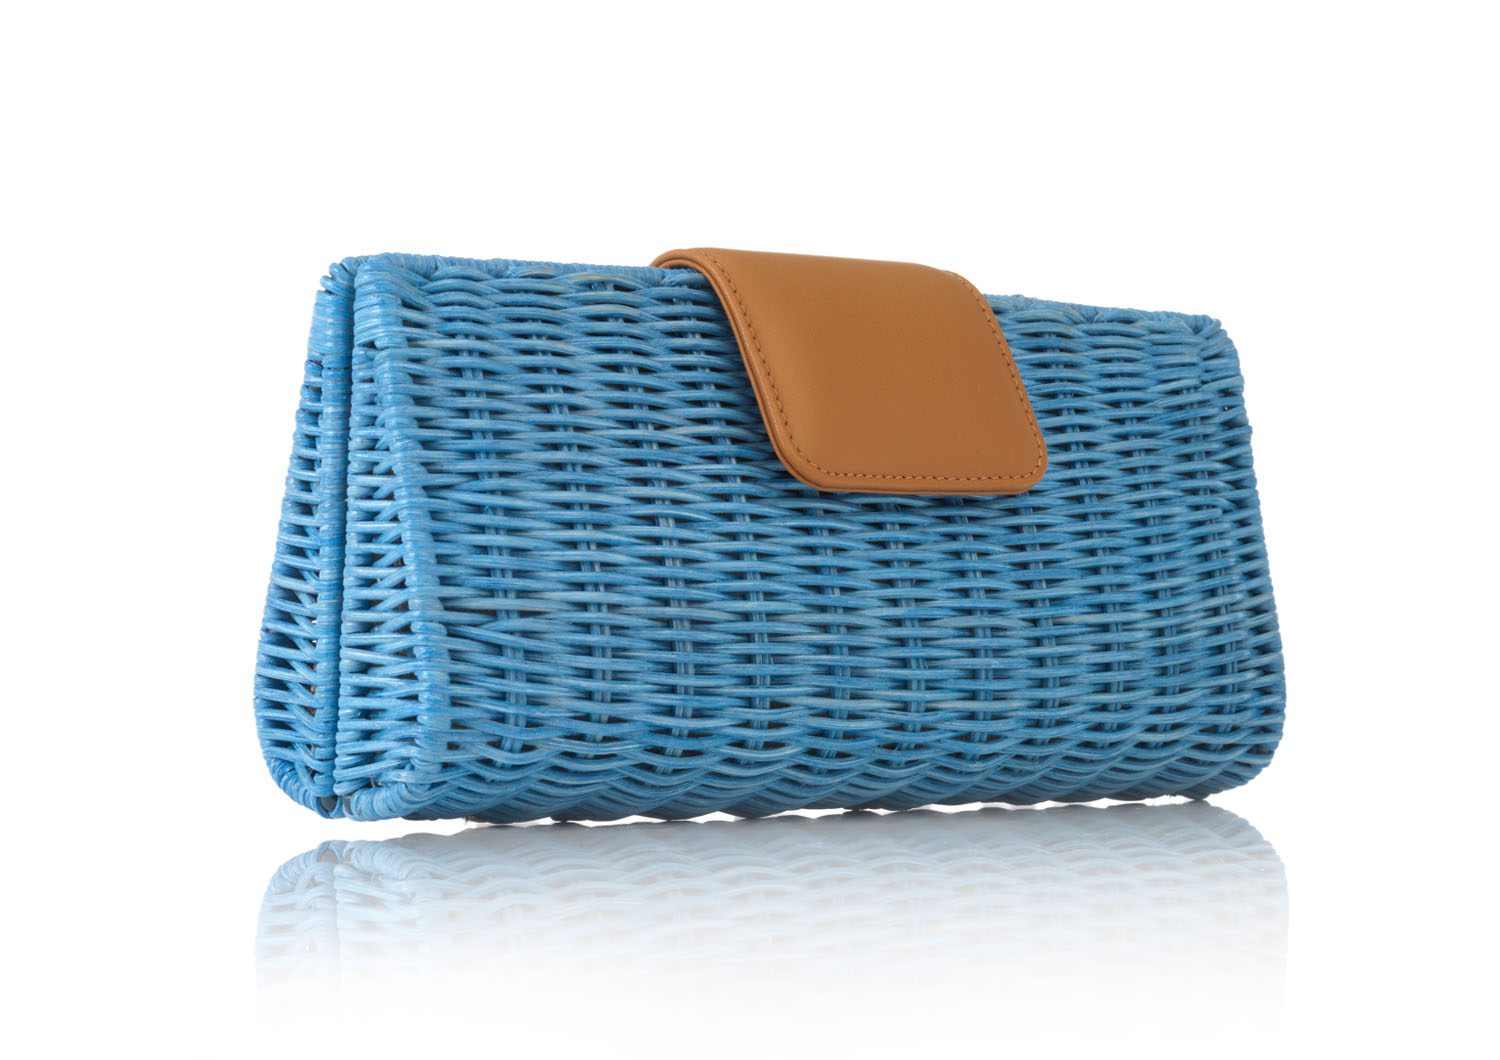 Woven Wicker Clutch in Long Shape